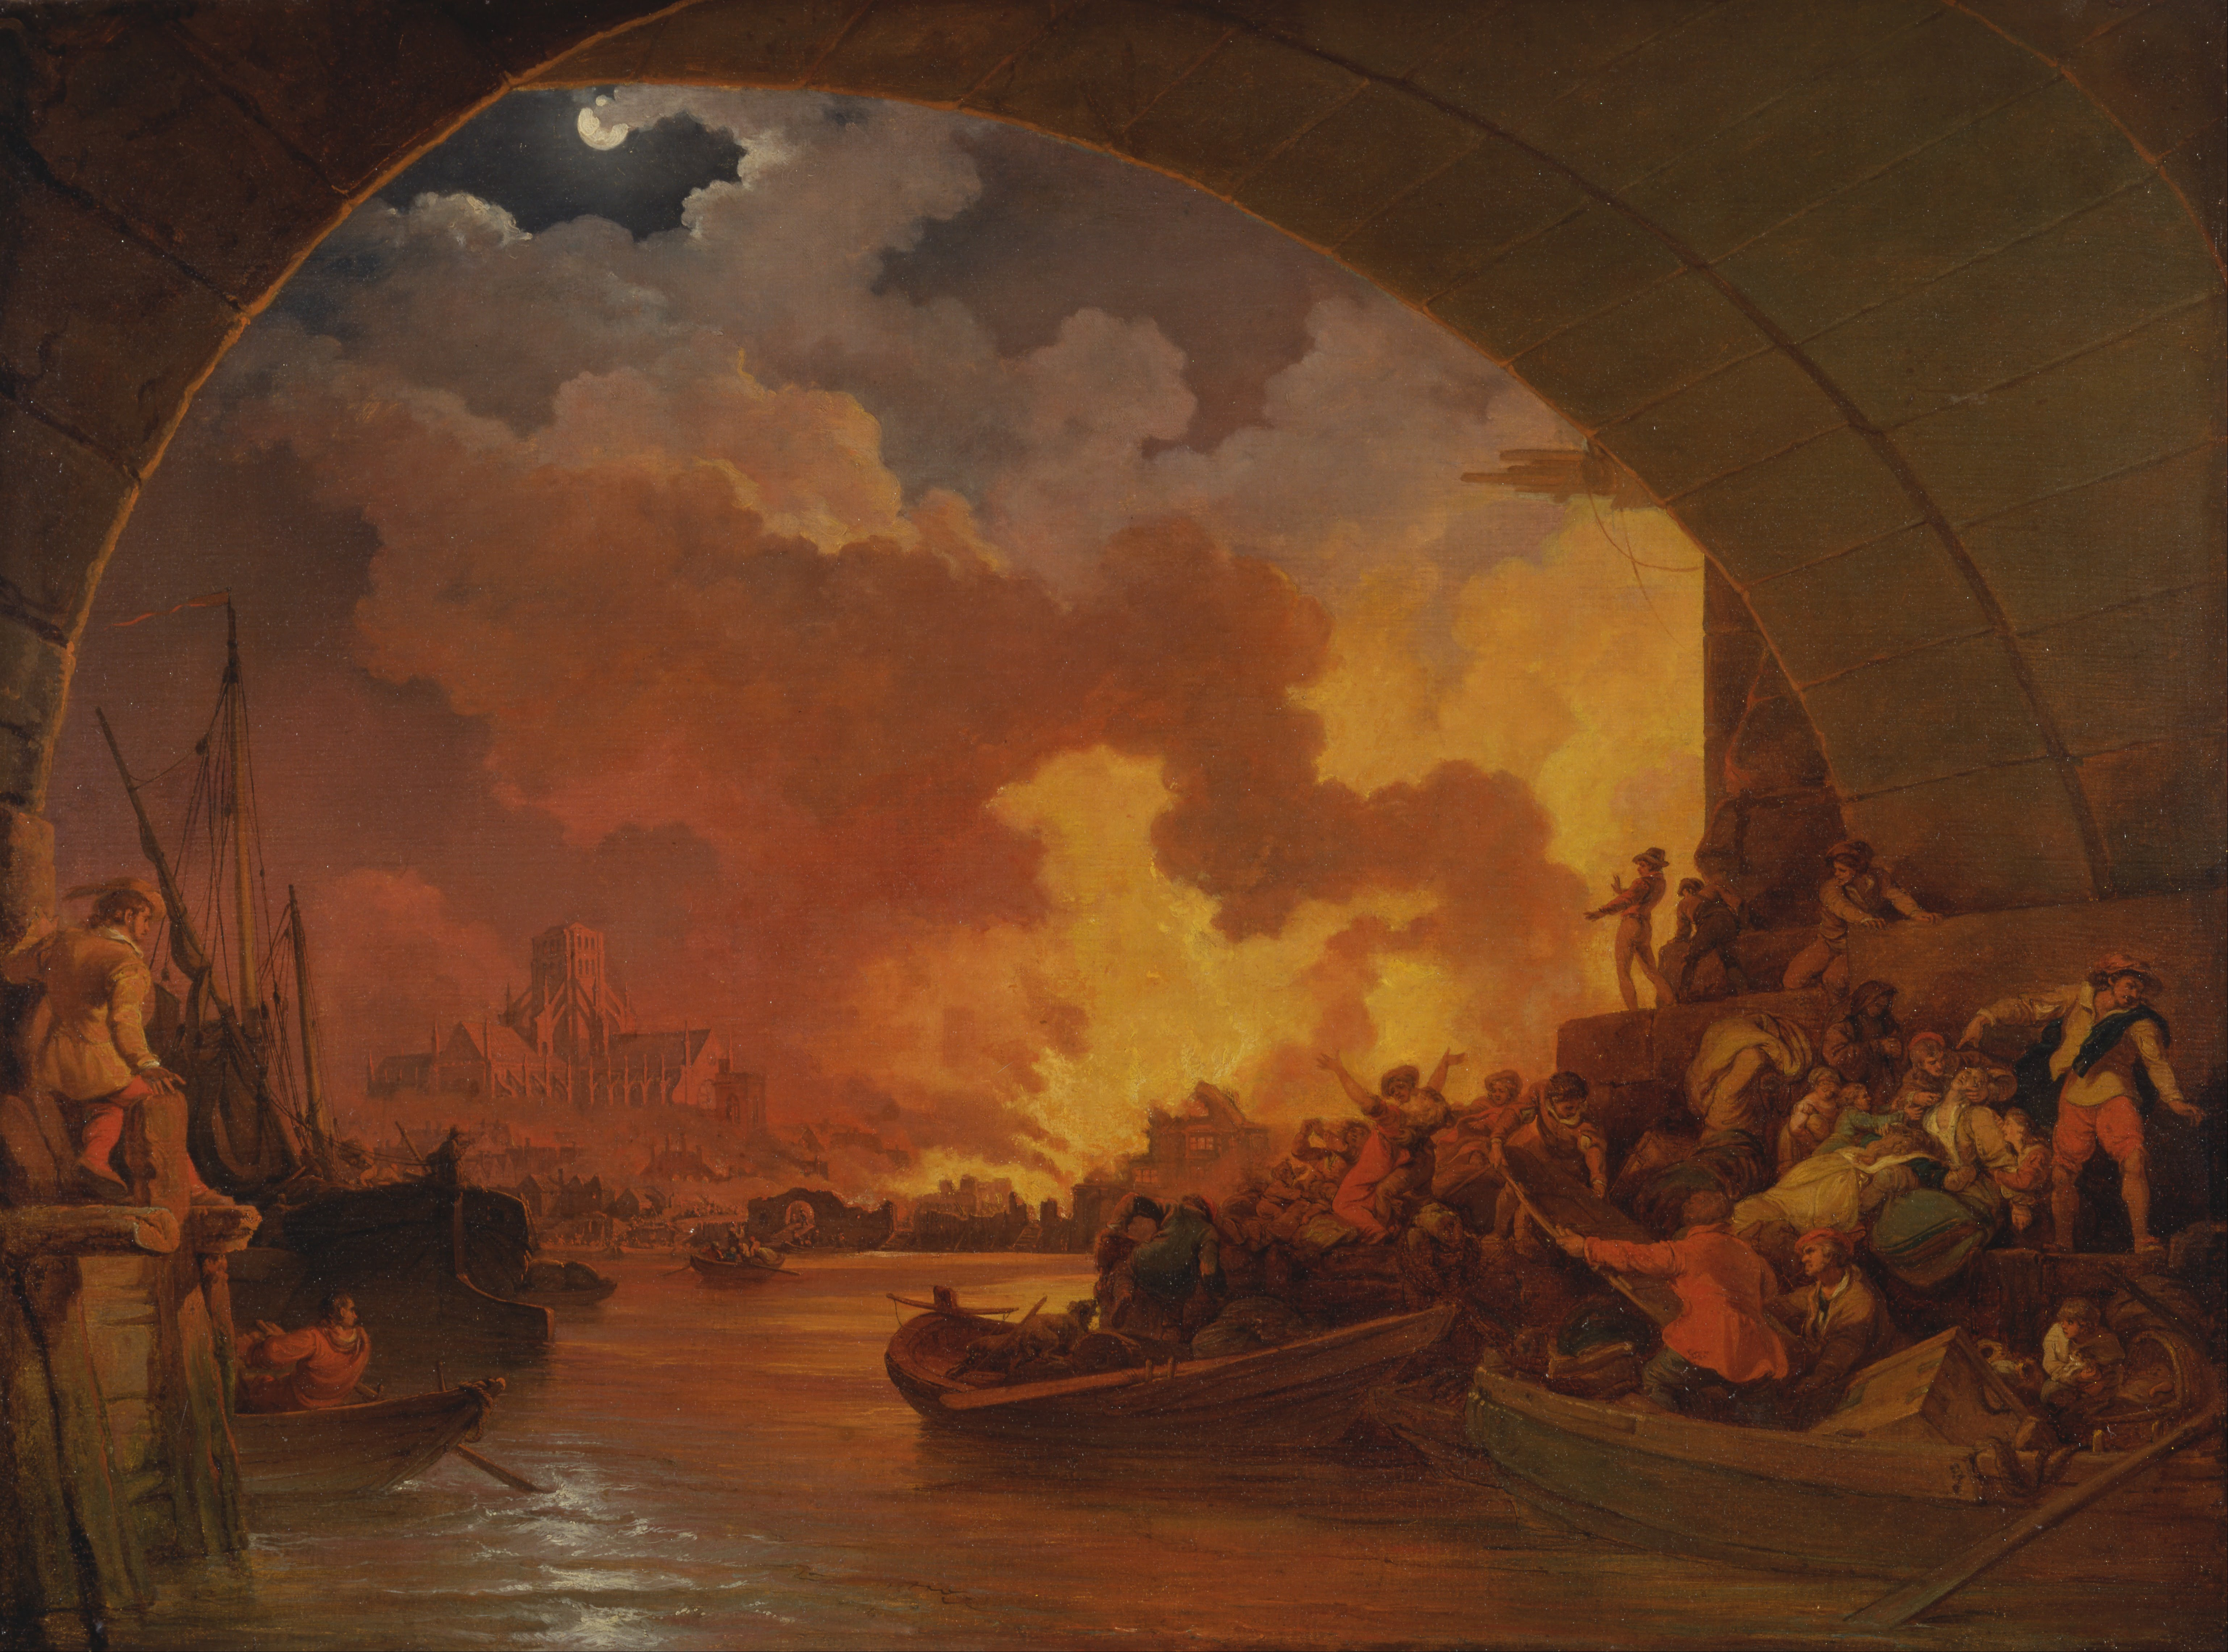 Filephilippe jacques de loutherbourg the great fire of london google art